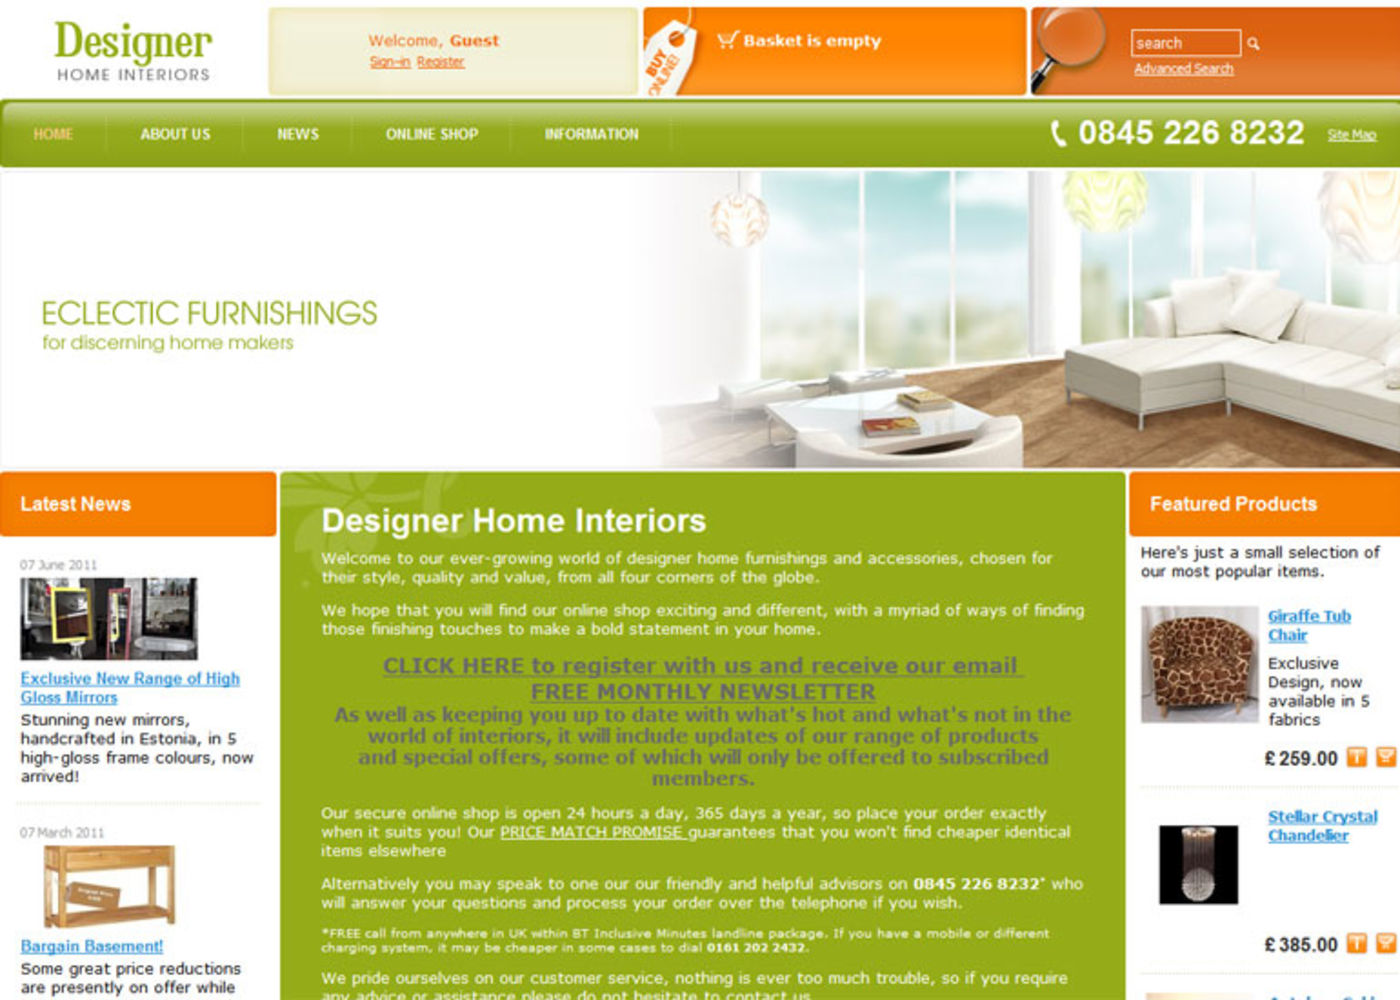 Designer Home Interiors Homepage header